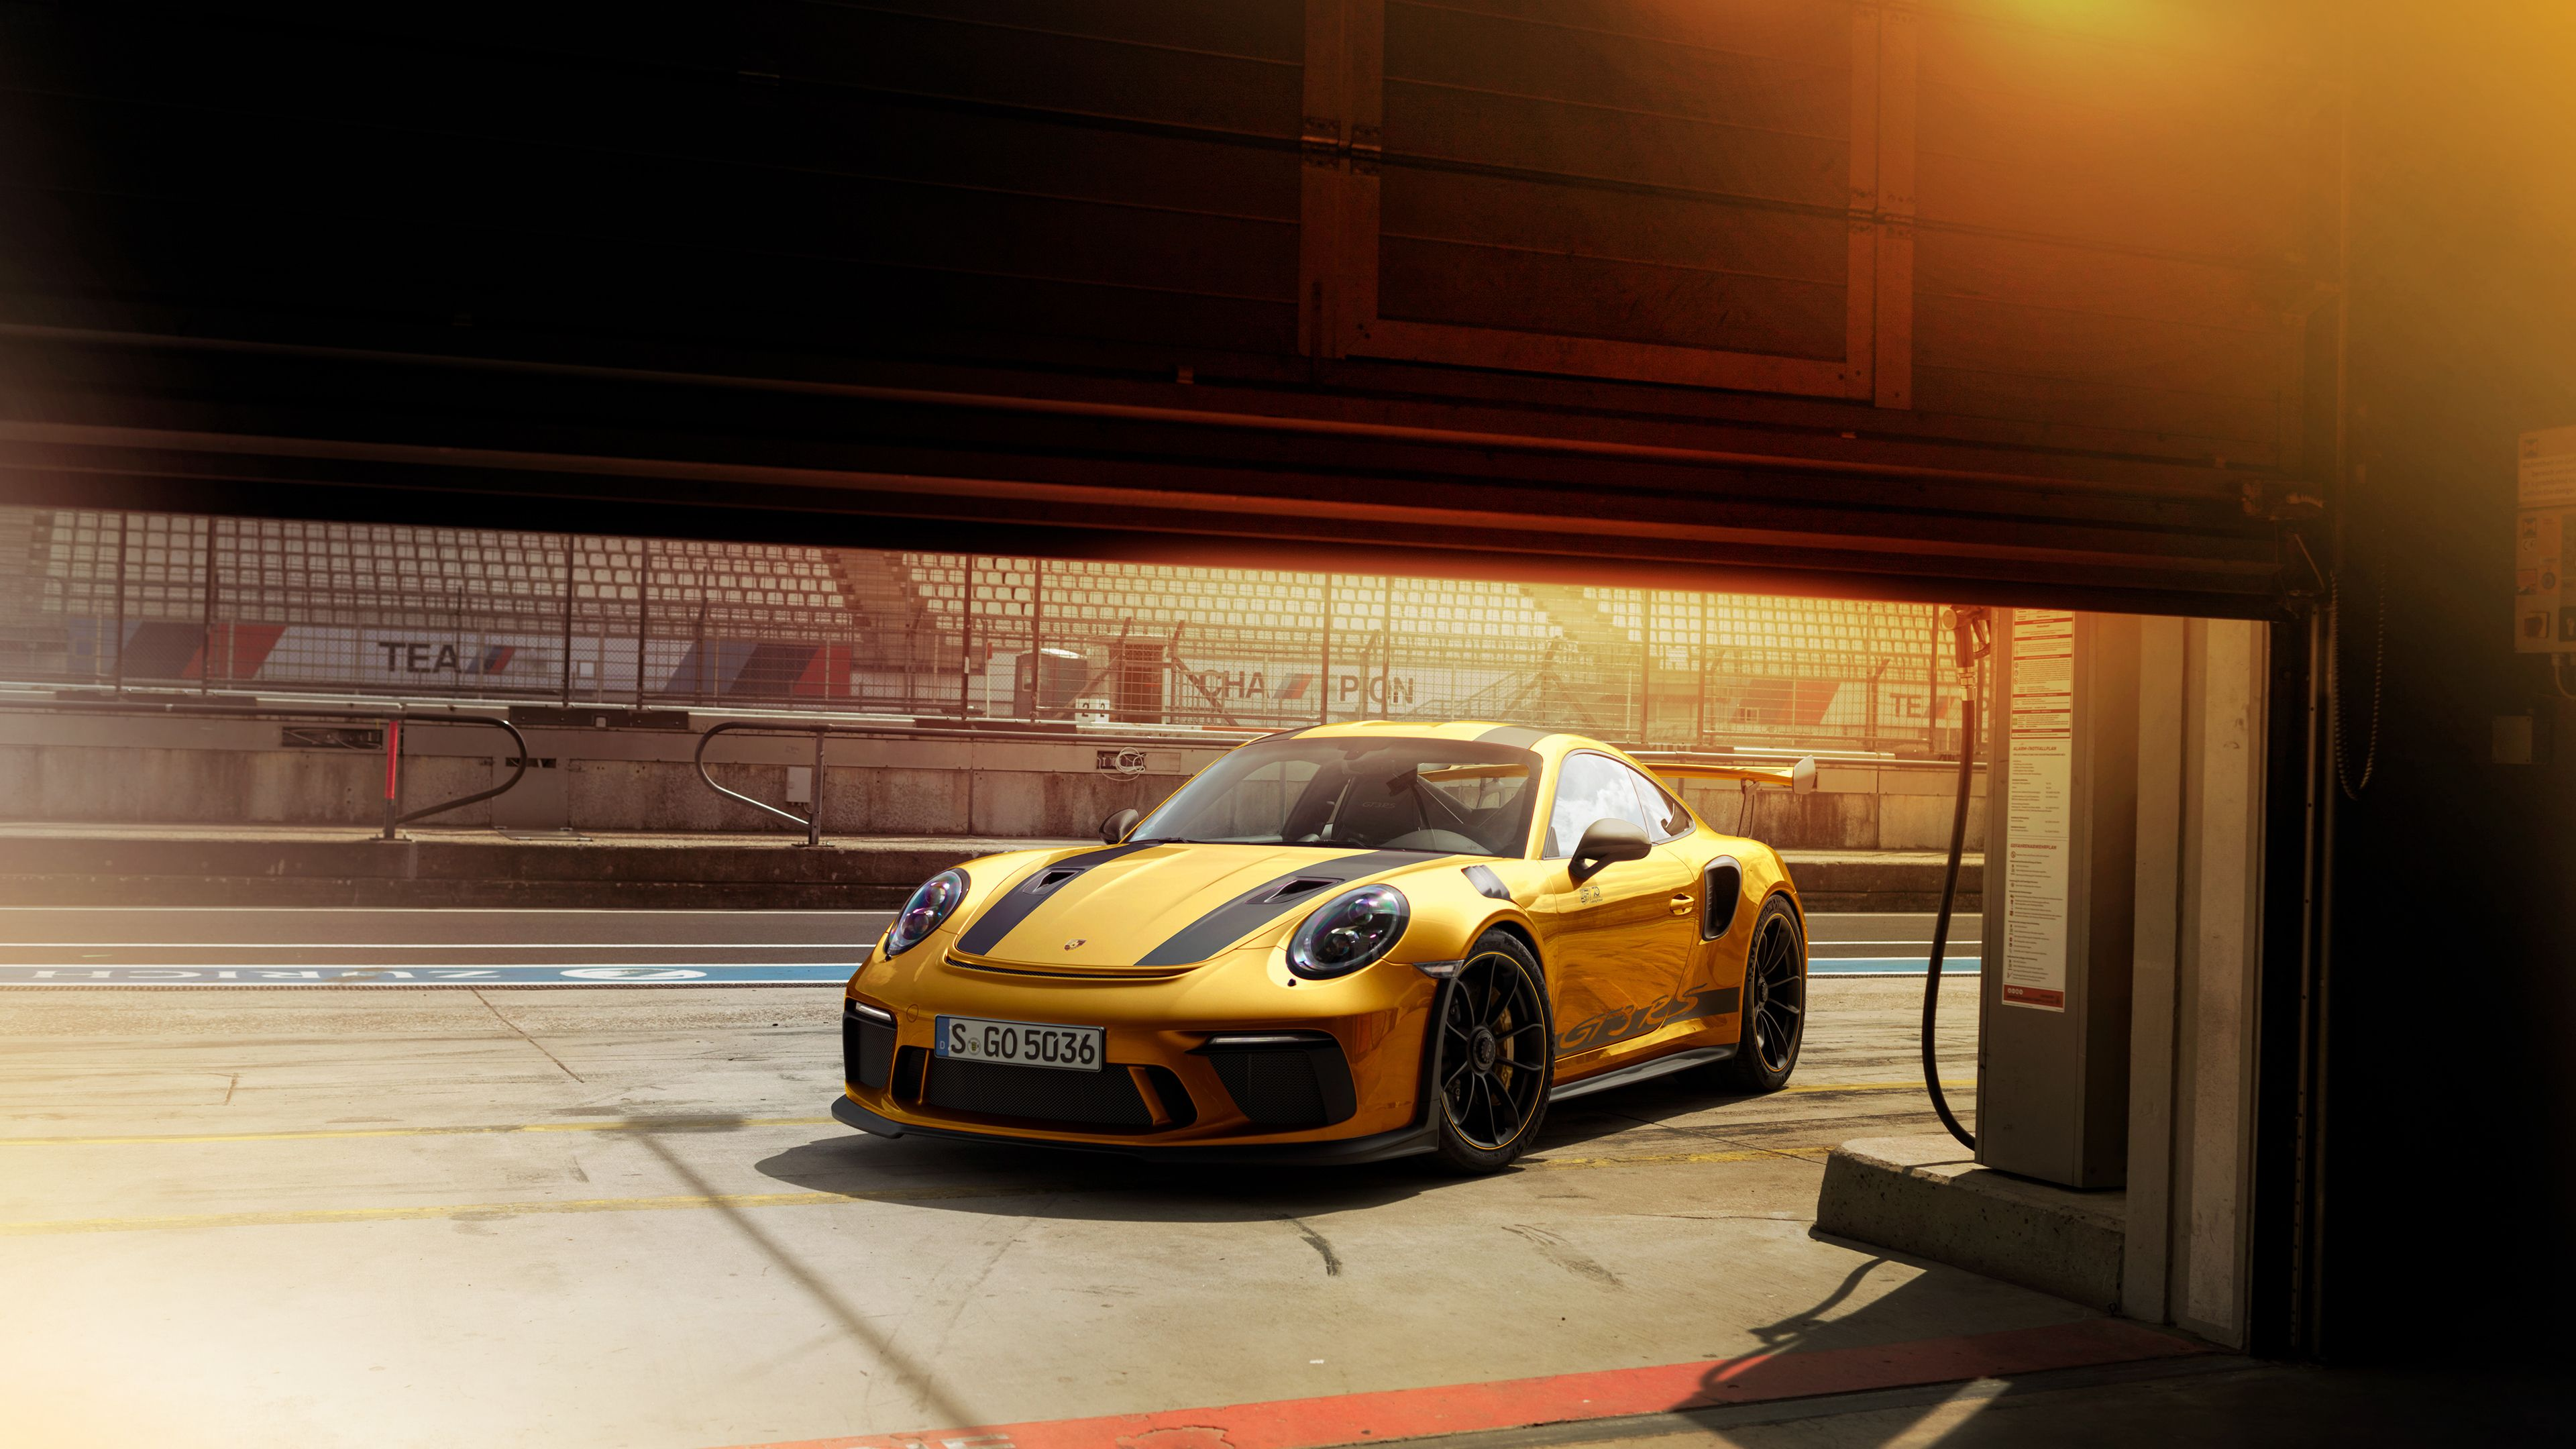 Porsche 911gt3rs Gold 4k Wallpaper Https Hdwallpapersmafia Com Porsche 911gt3rs Gold 4k Wallpaper Porsche 911gt3rs Gold 4k Porsche Porsche 911 Super Cars